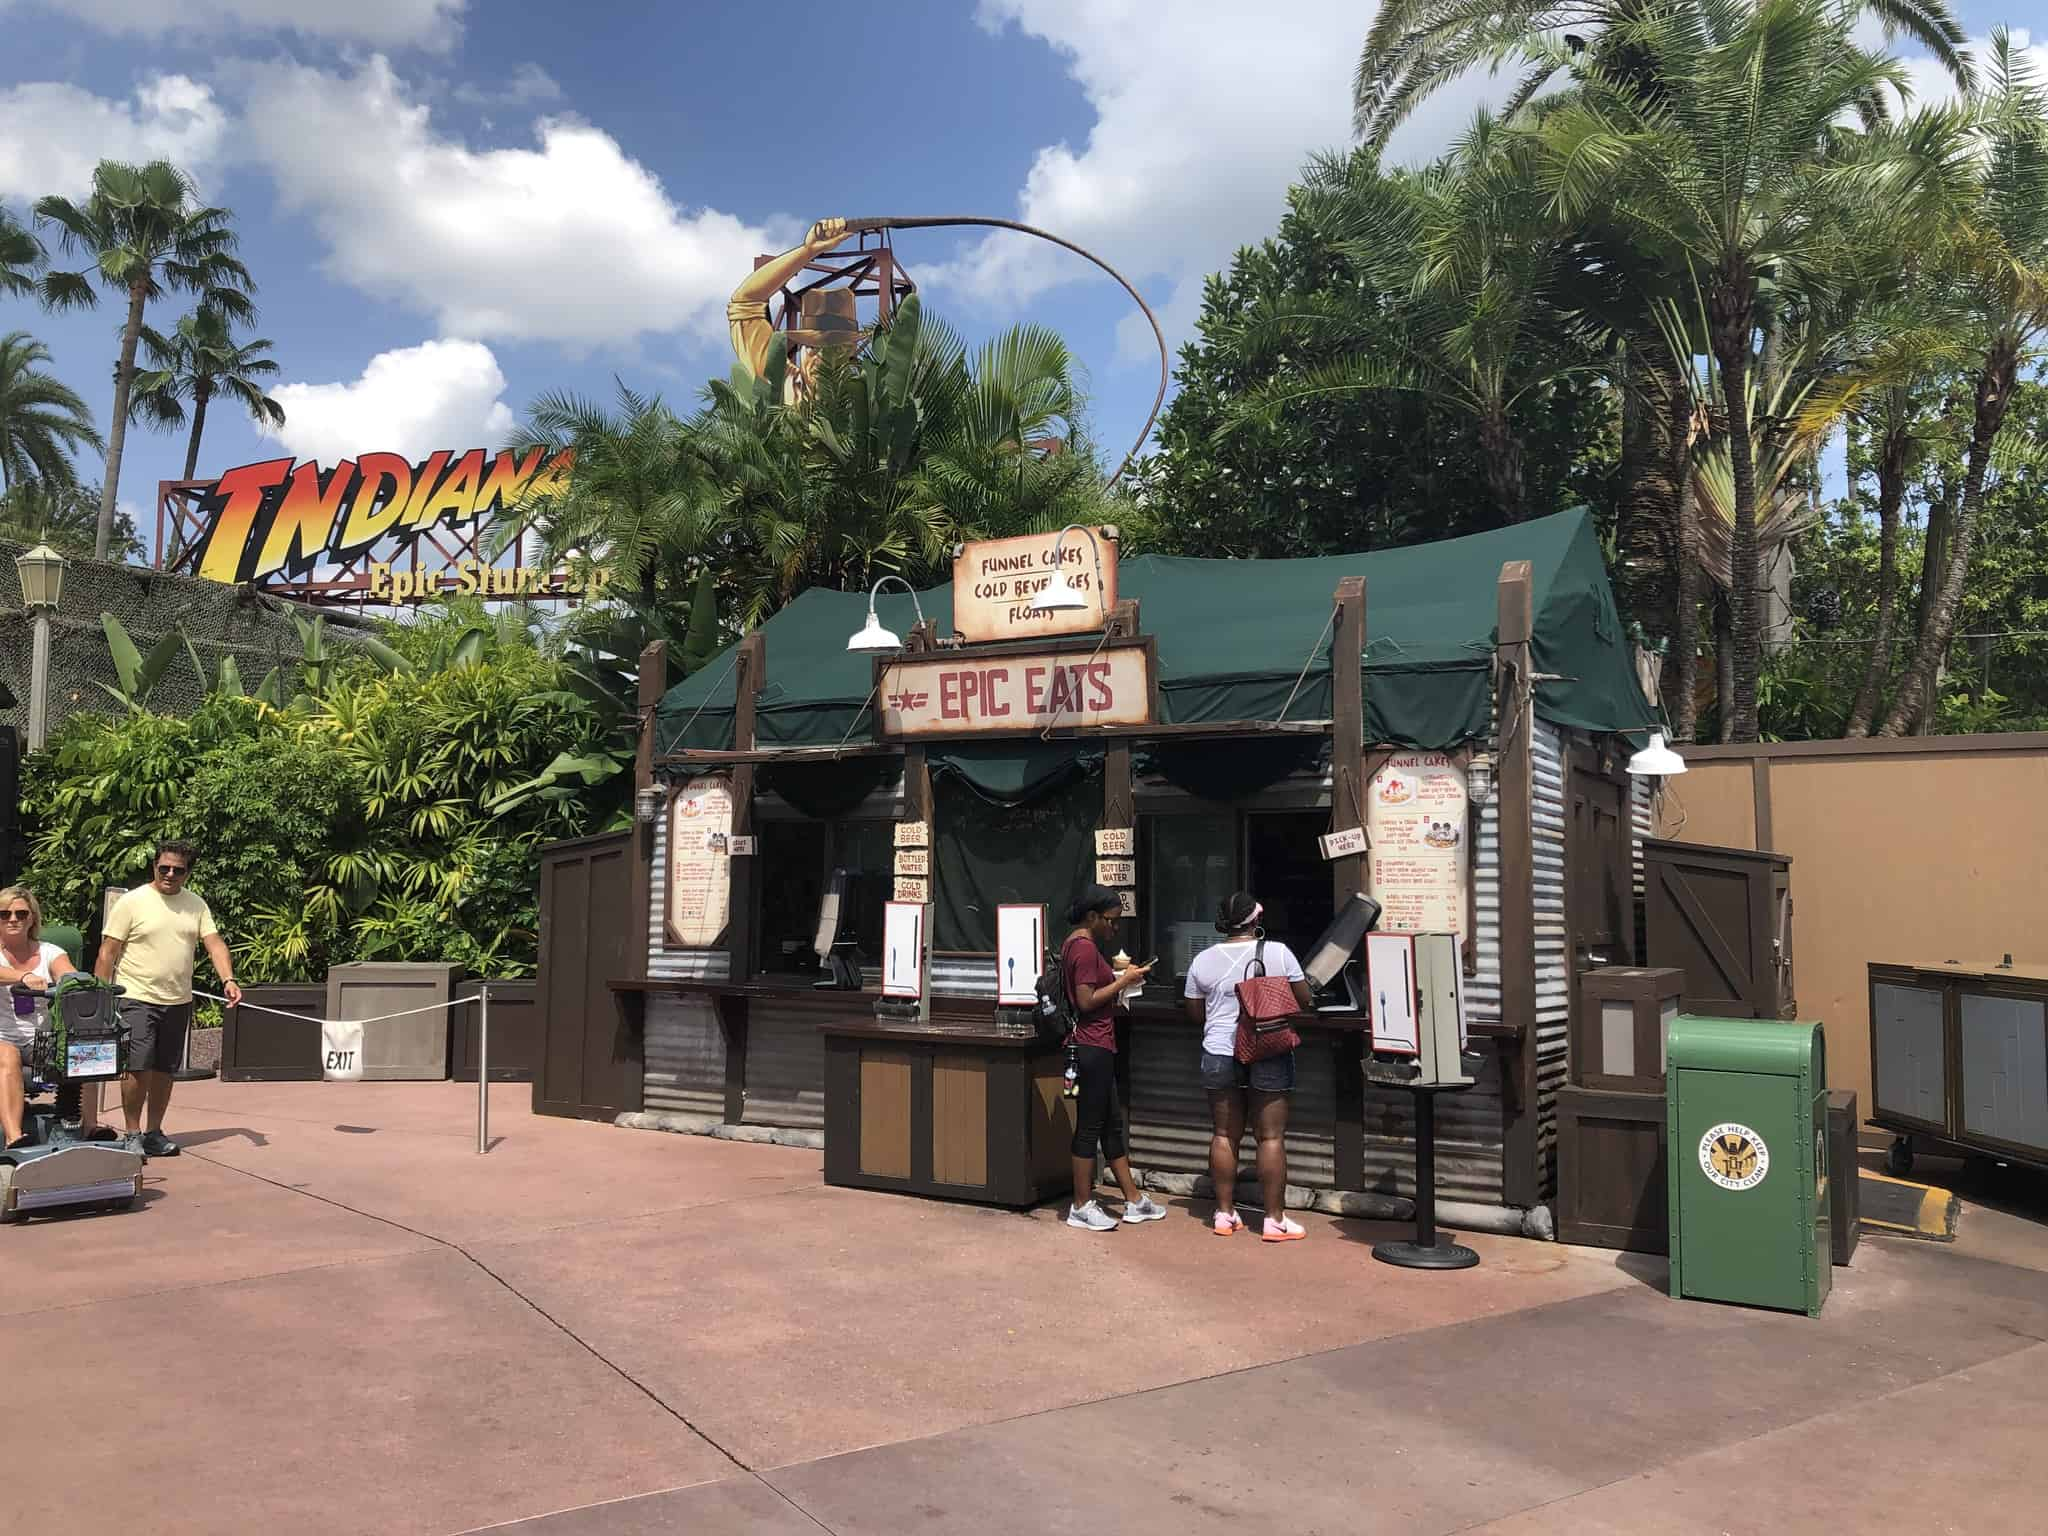 Epic Eats at Hollywood studios